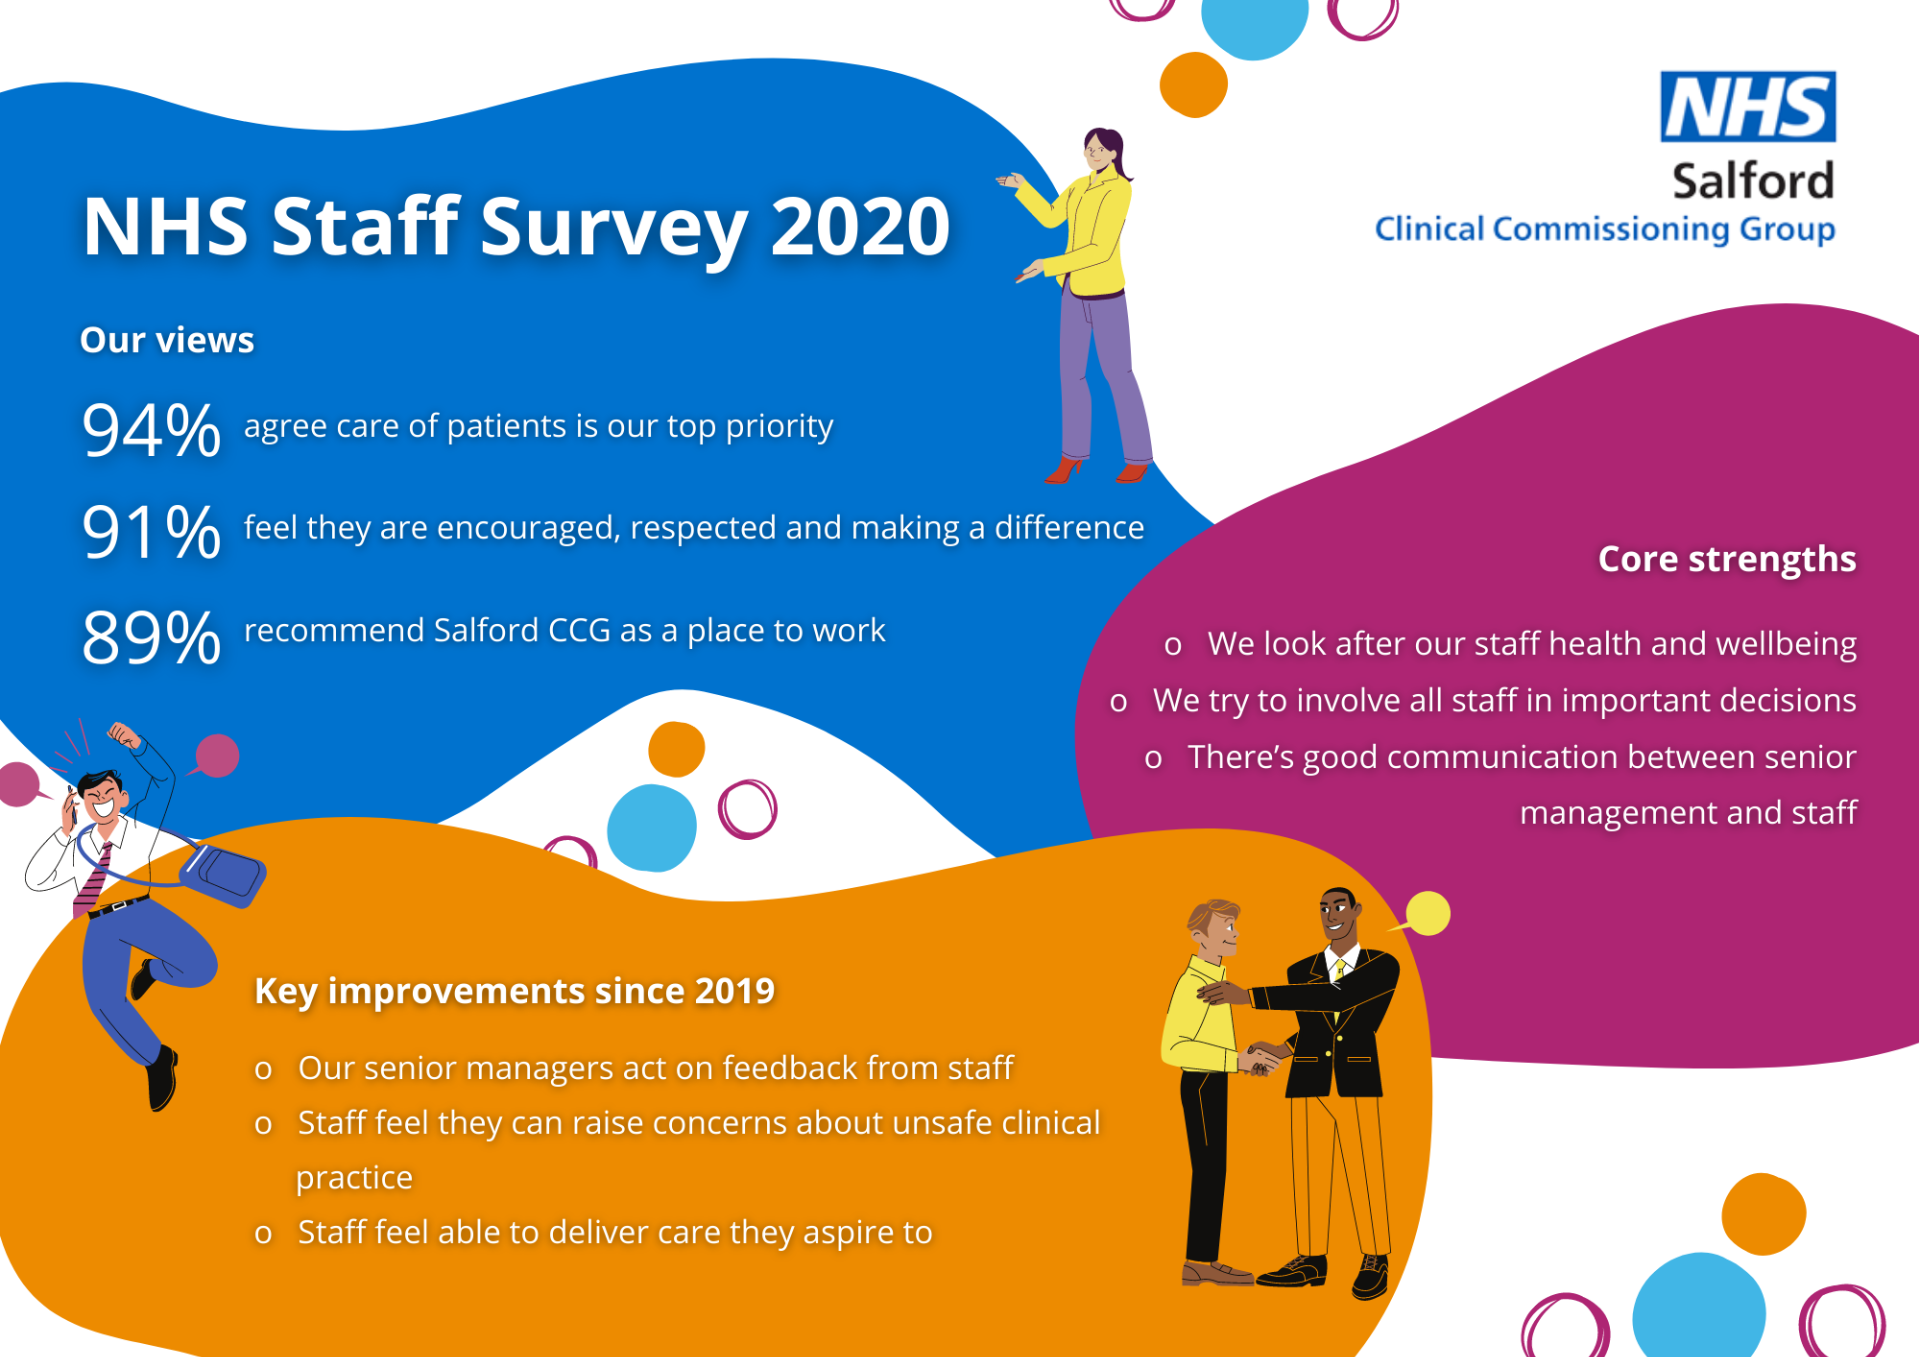 NHS Staff Survey 2020 results published for Salford CCG